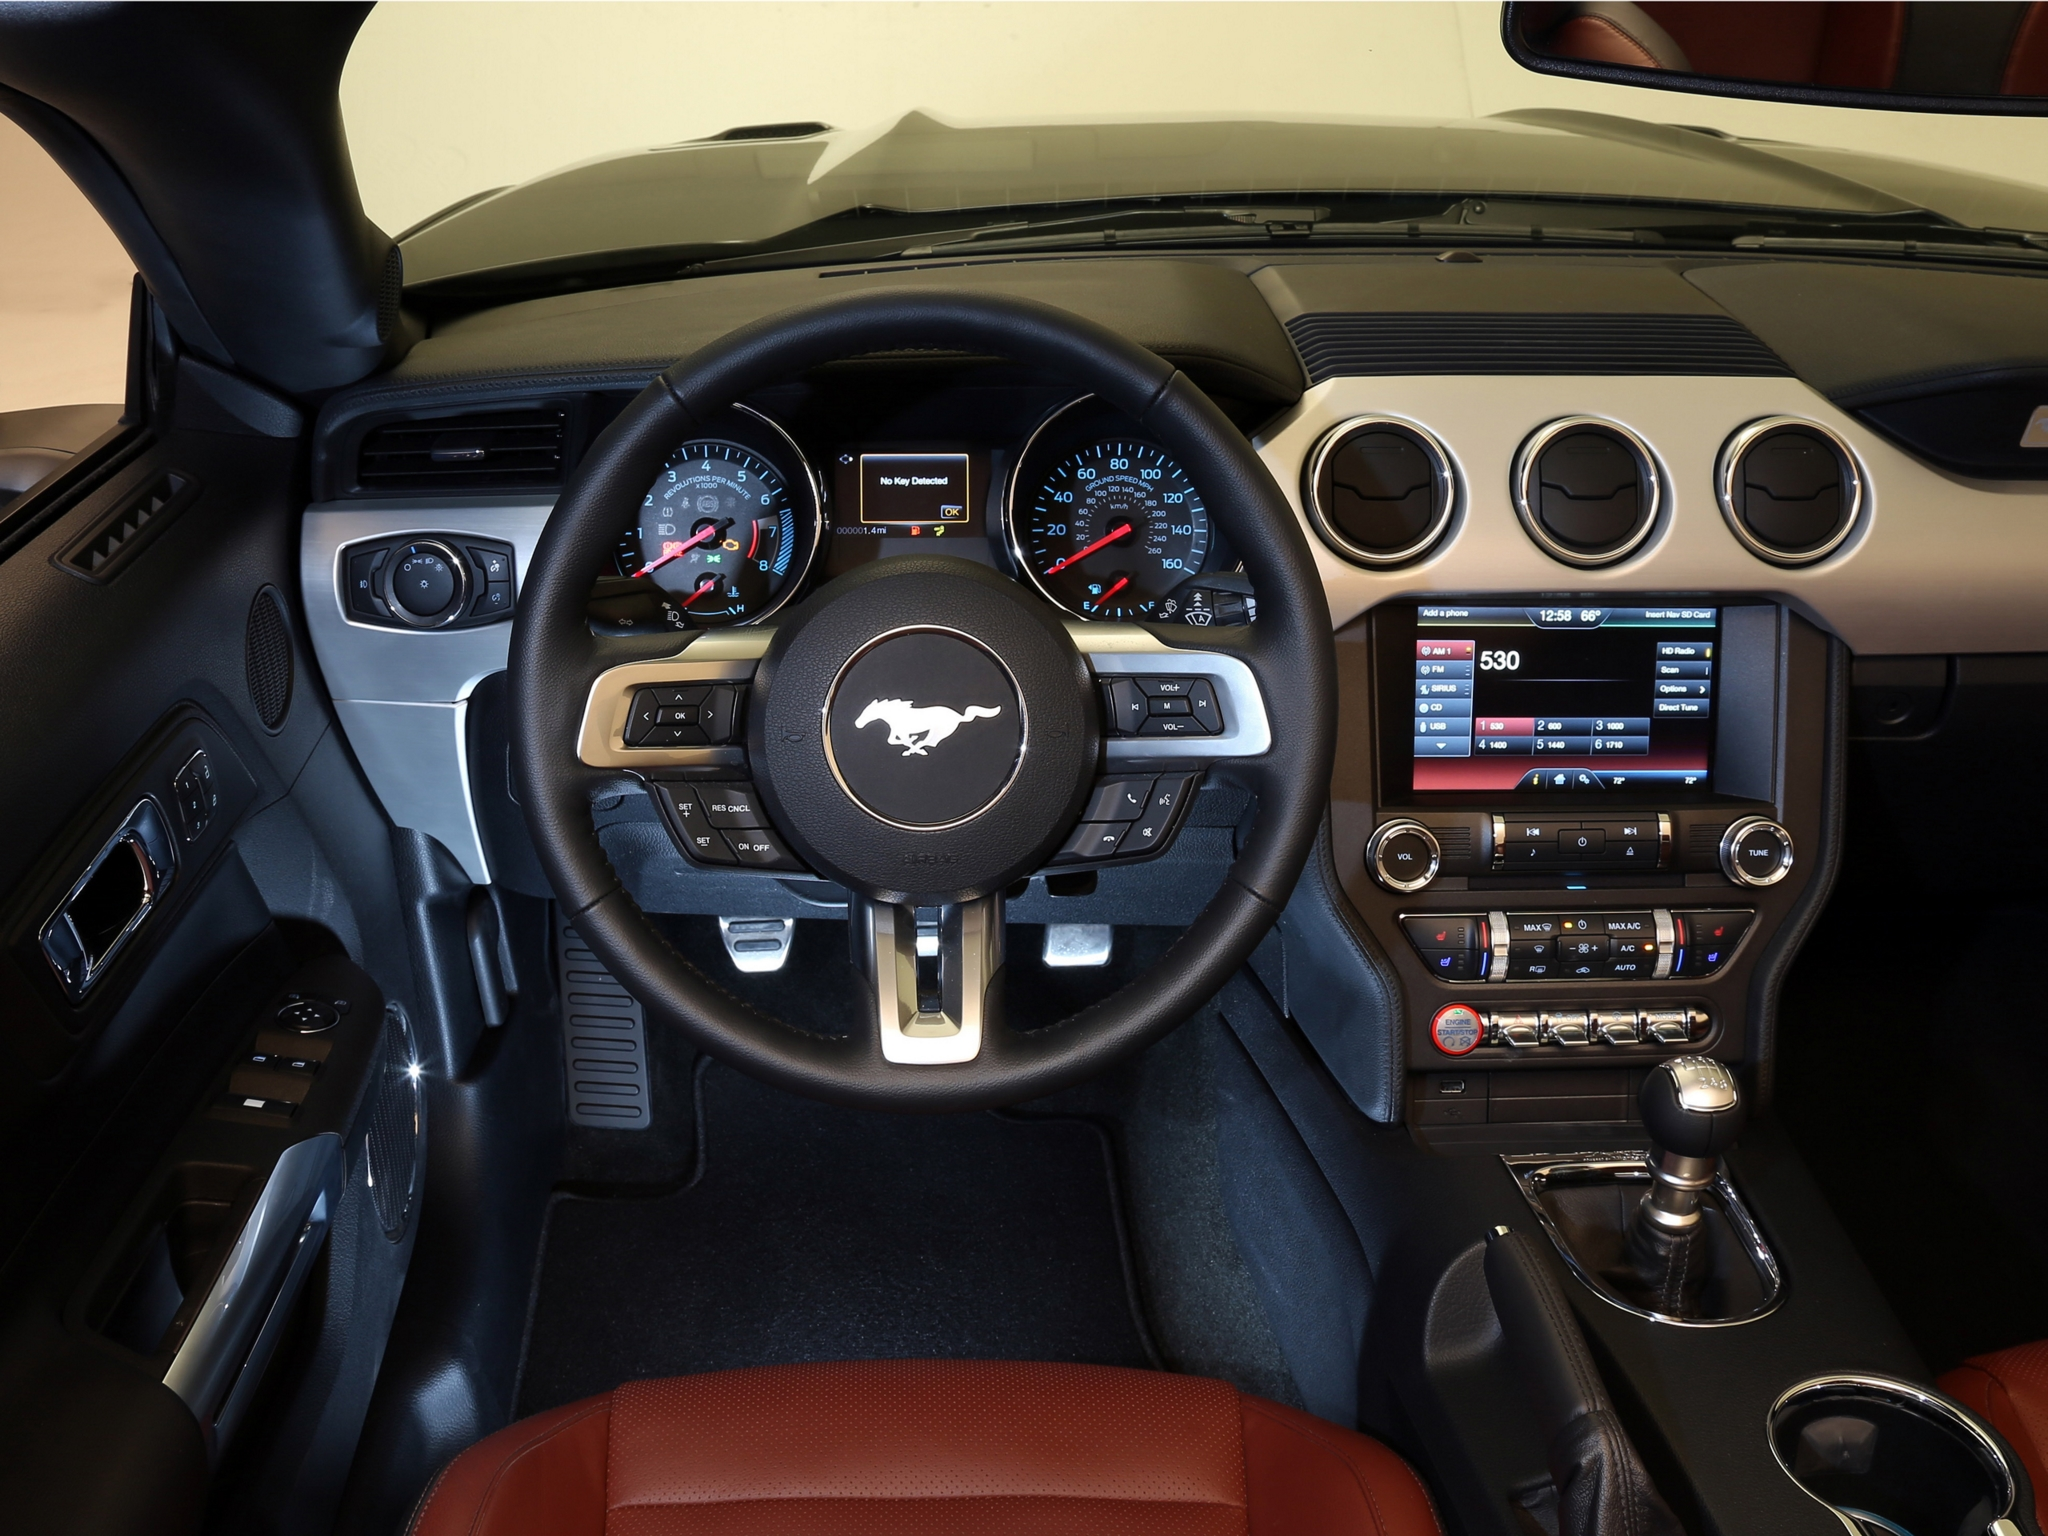 2014 ford mustang g t convertible muscle interior f. Black Bedroom Furniture Sets. Home Design Ideas